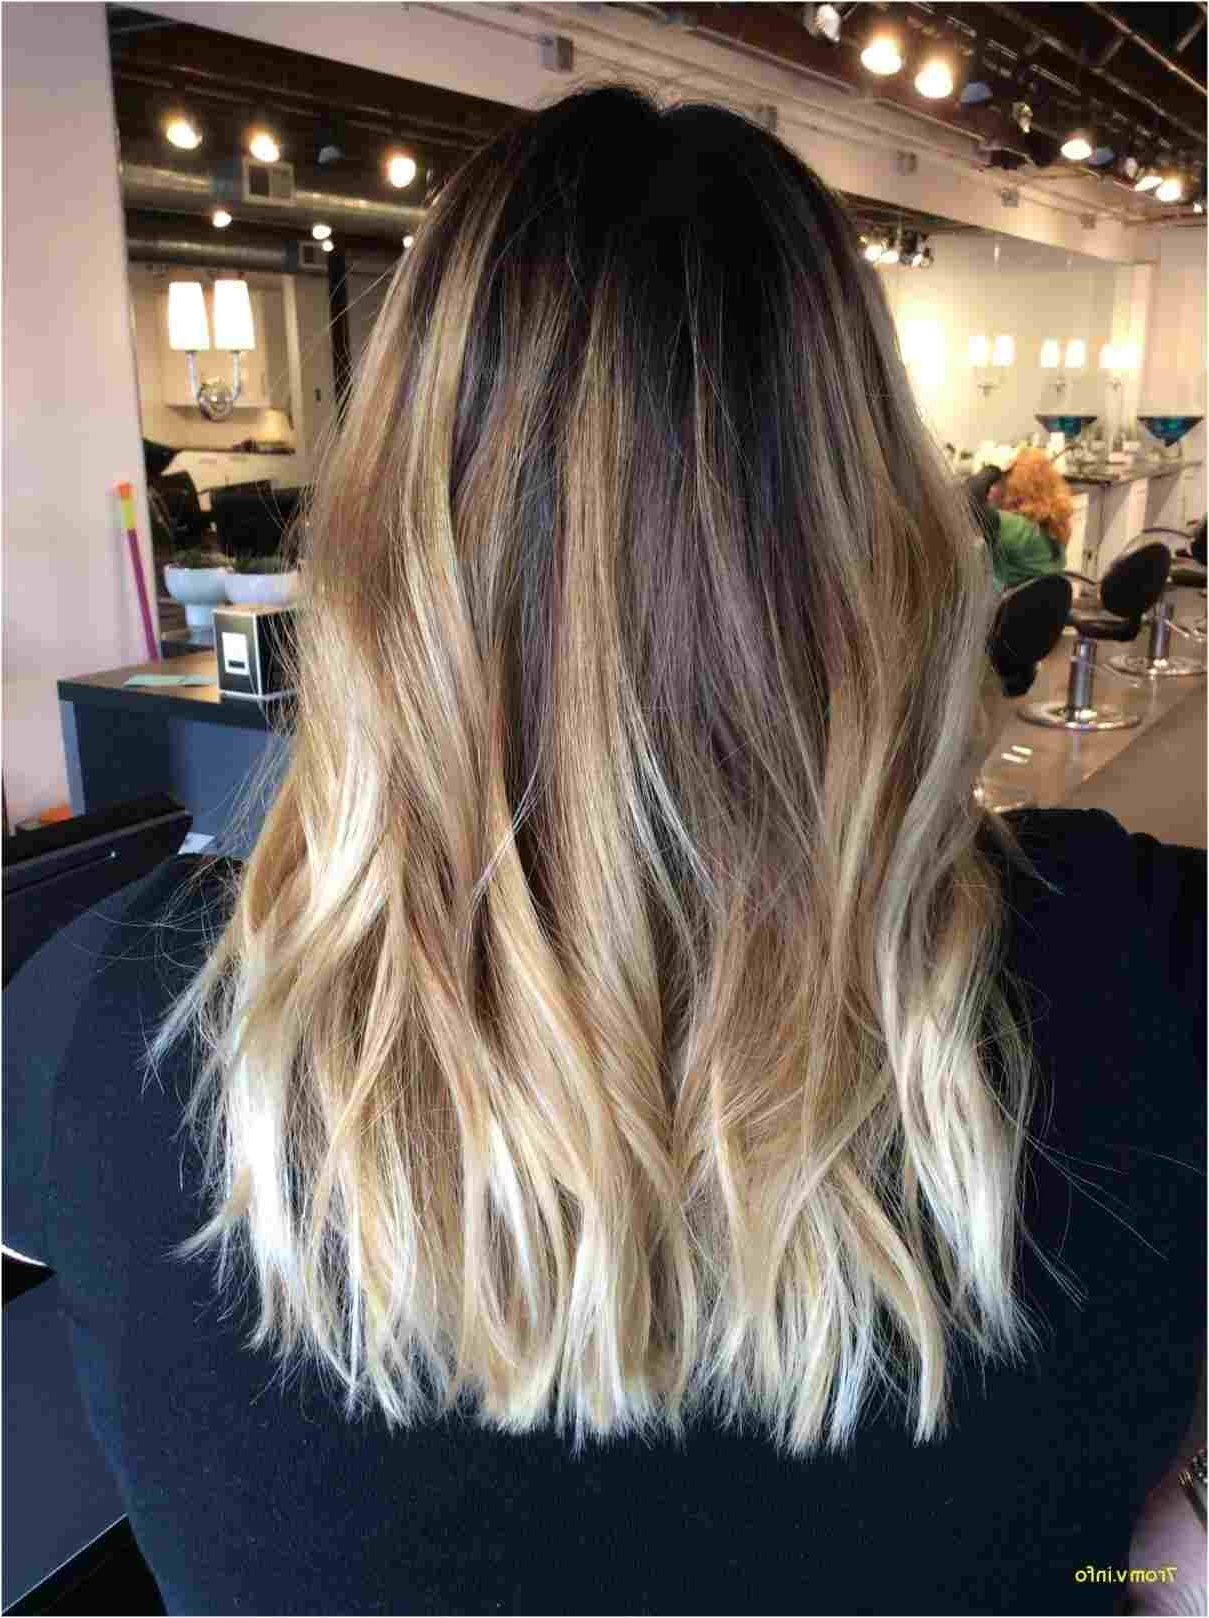 Styles Fashionable Rhomdowebsite Cool Icy Ashy Balayage Highlights With Regard To Famous Icy Ombre Waves Blonde Hairstyles (View 17 of 20)